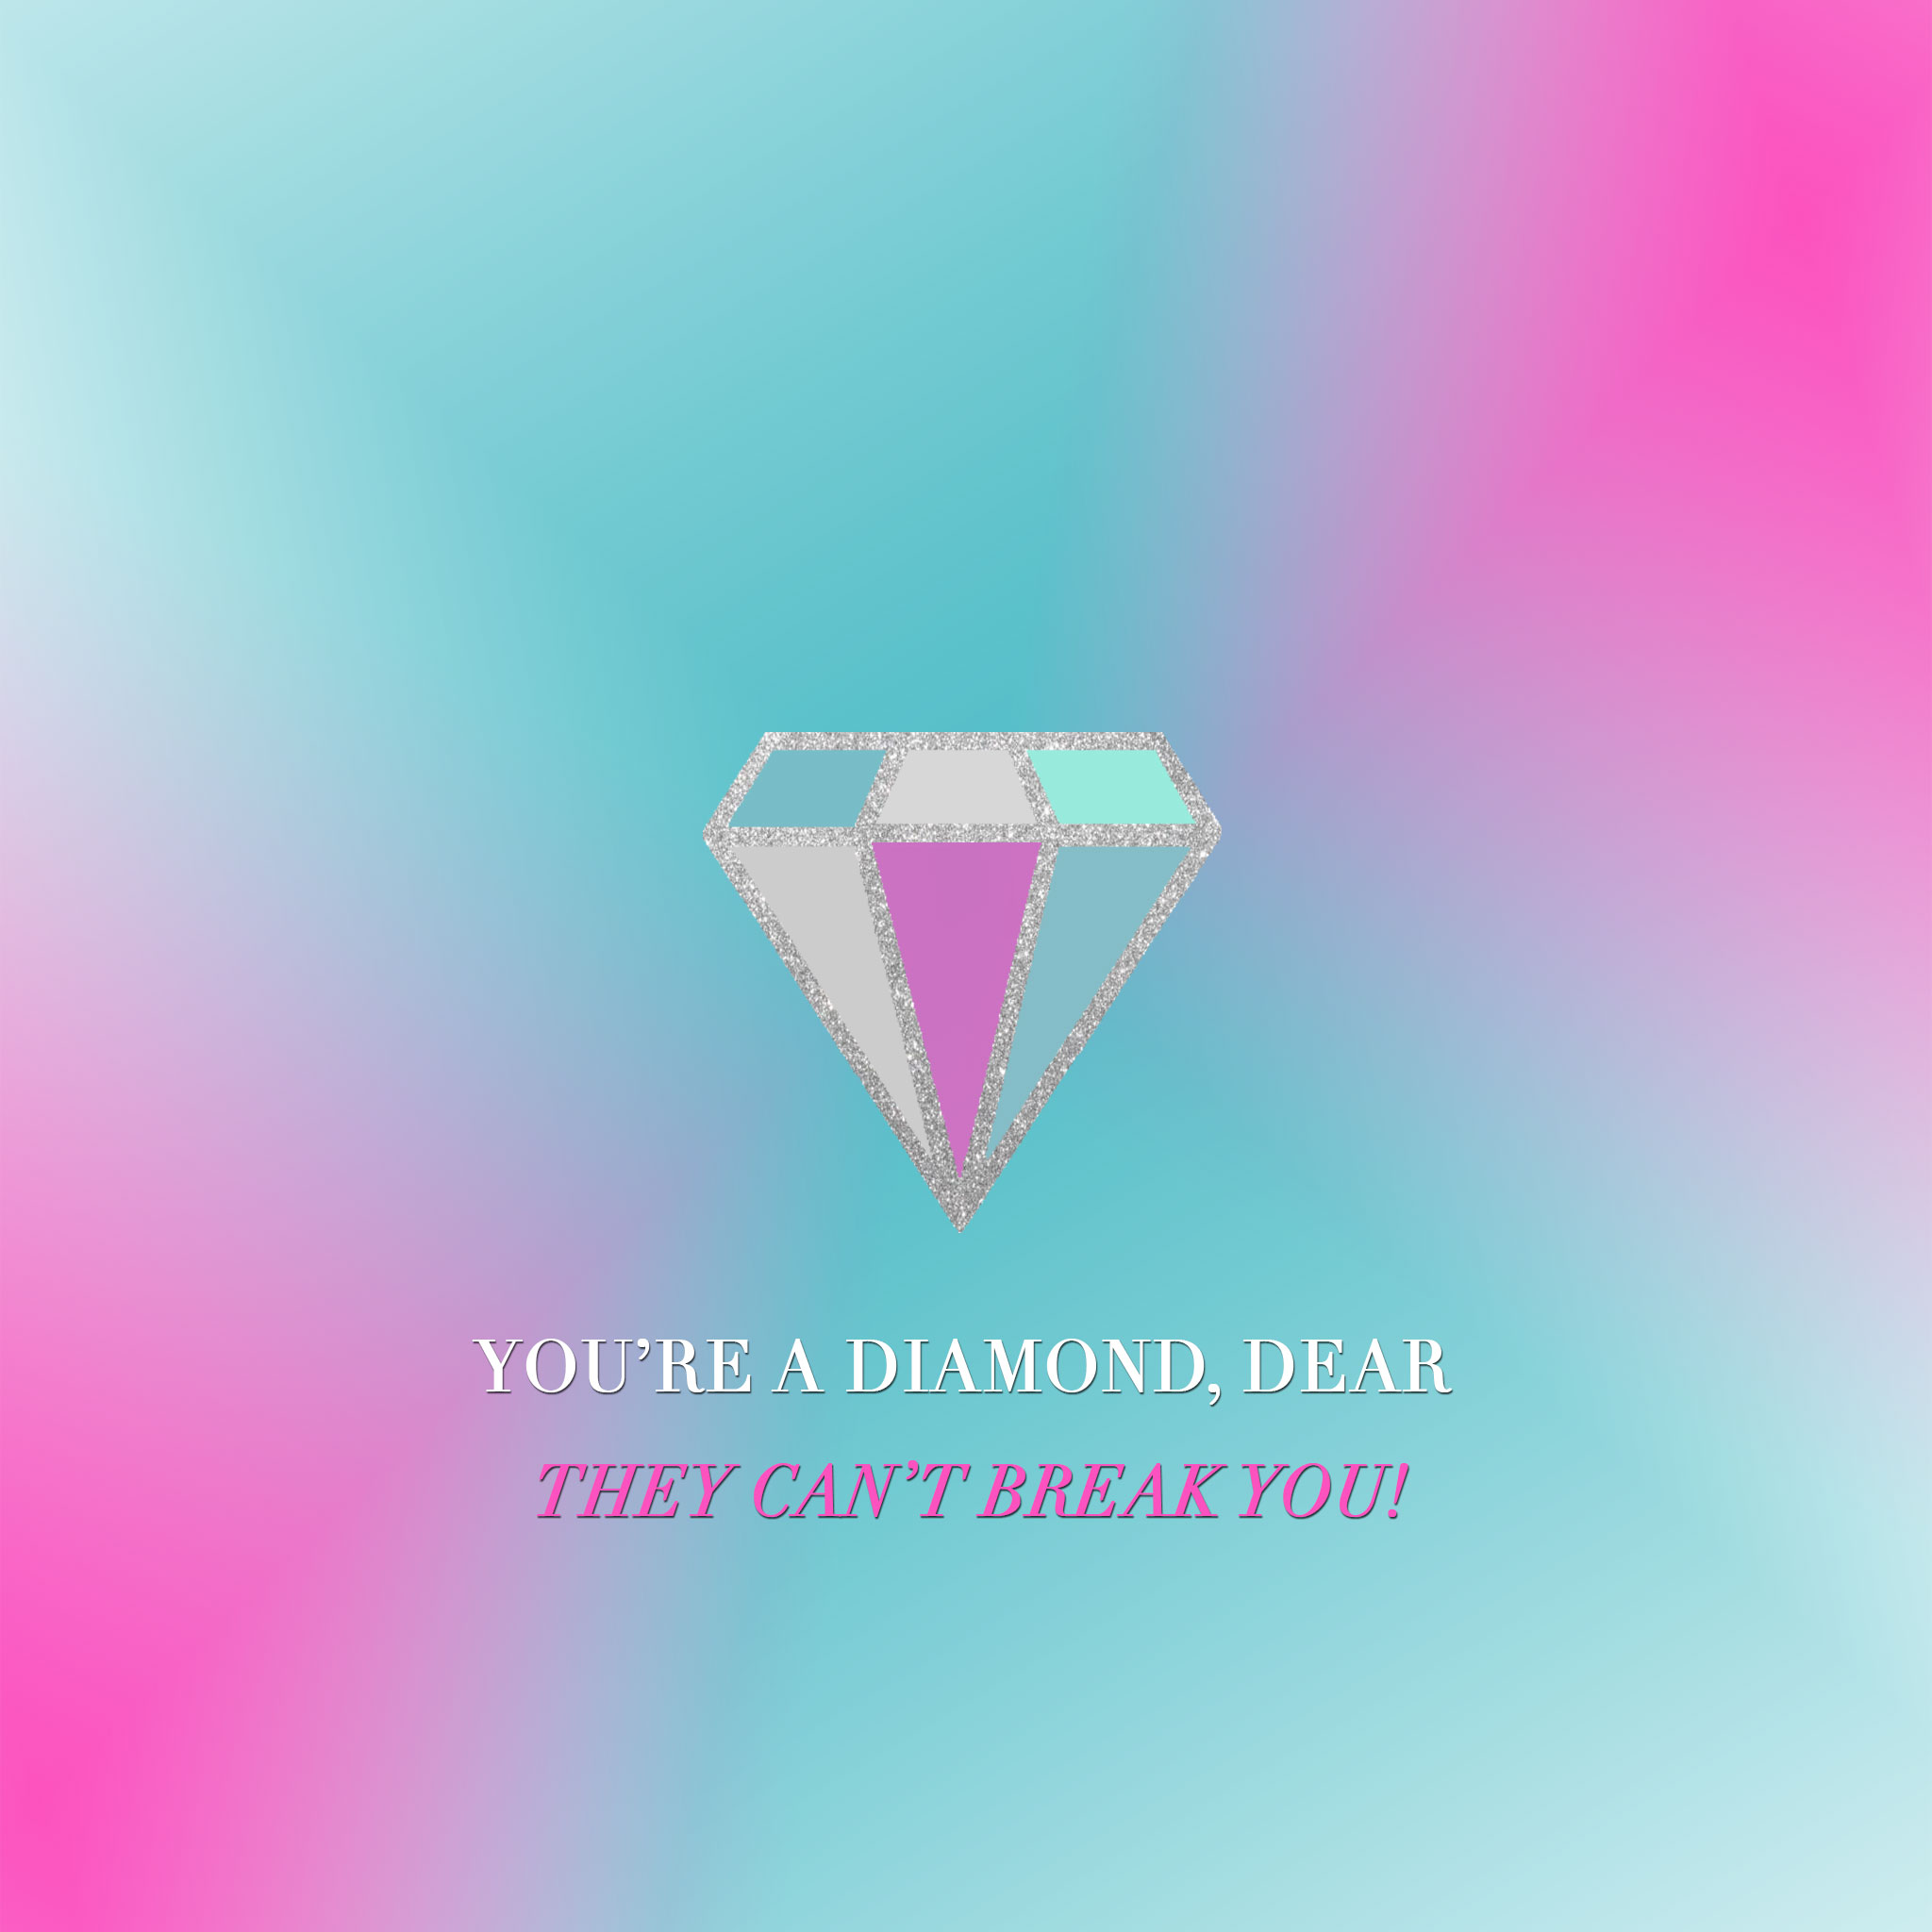 Youre a diamond tech wallpapers strange charmedstrange charmed youre a diamond tech wallpapers voltagebd Image collections